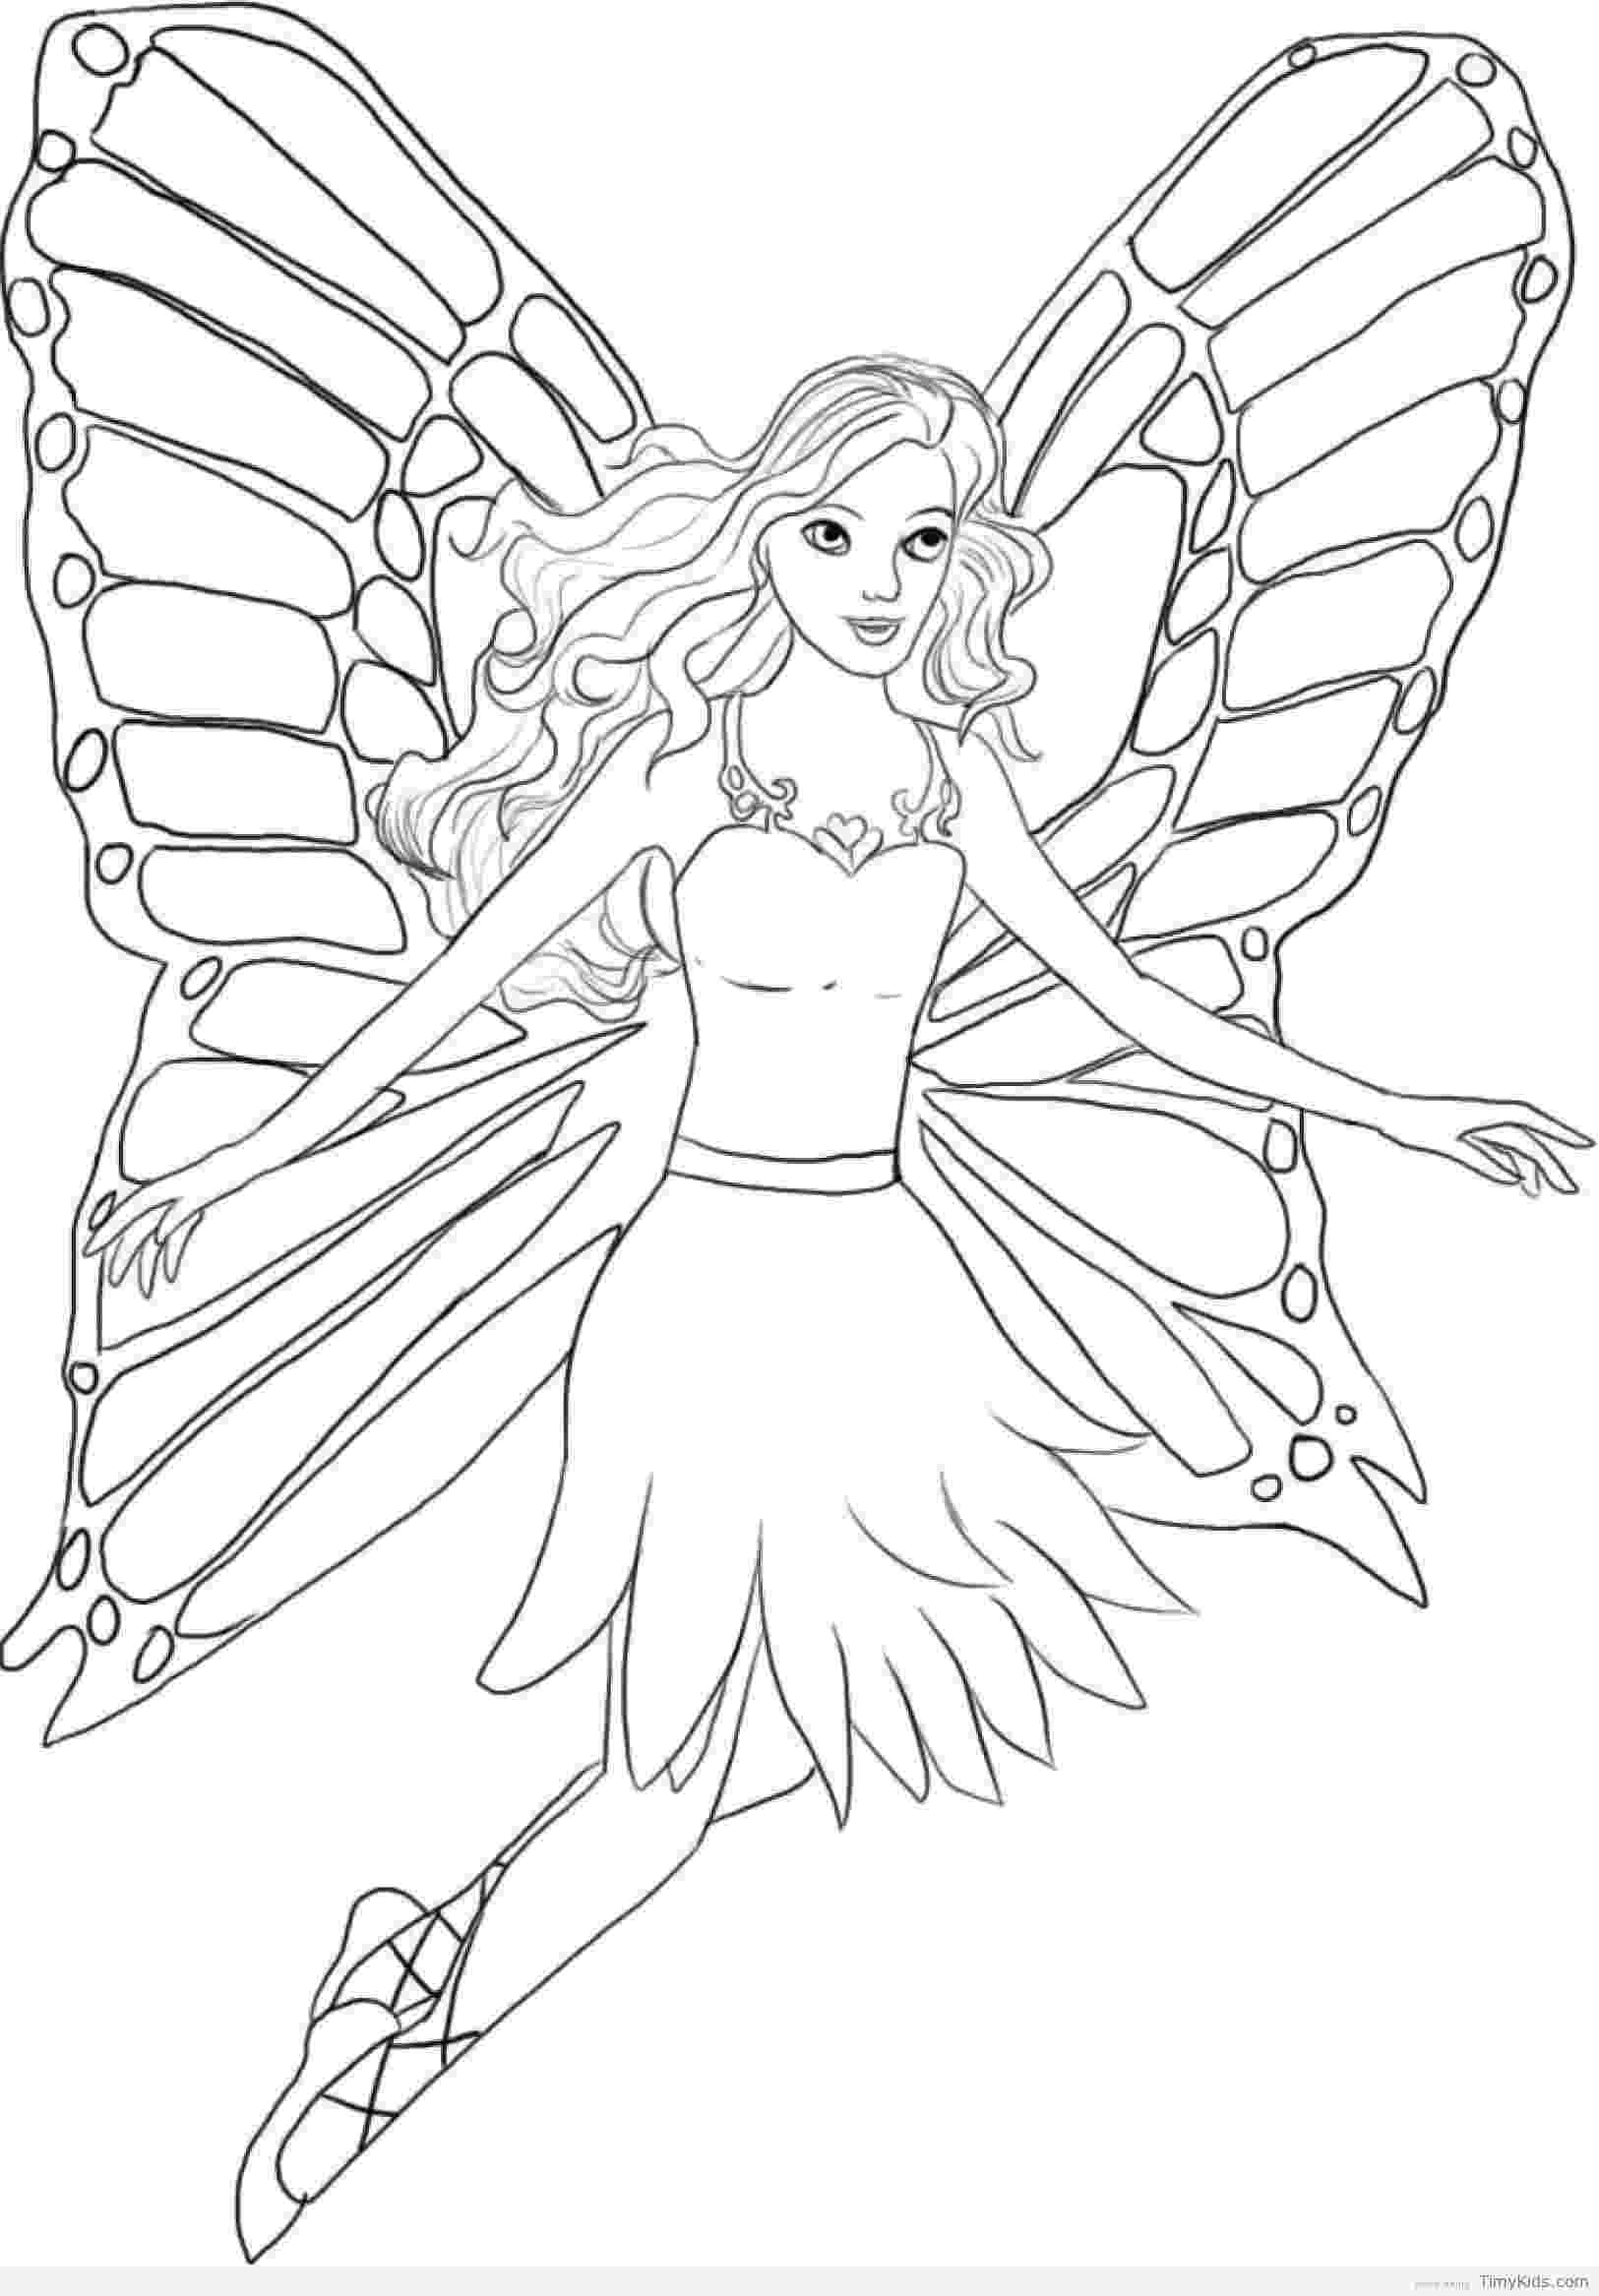 colouring pages of princesses and fairies httptimykidscomfairy princess coloring pagehtml of colouring pages and princesses fairies